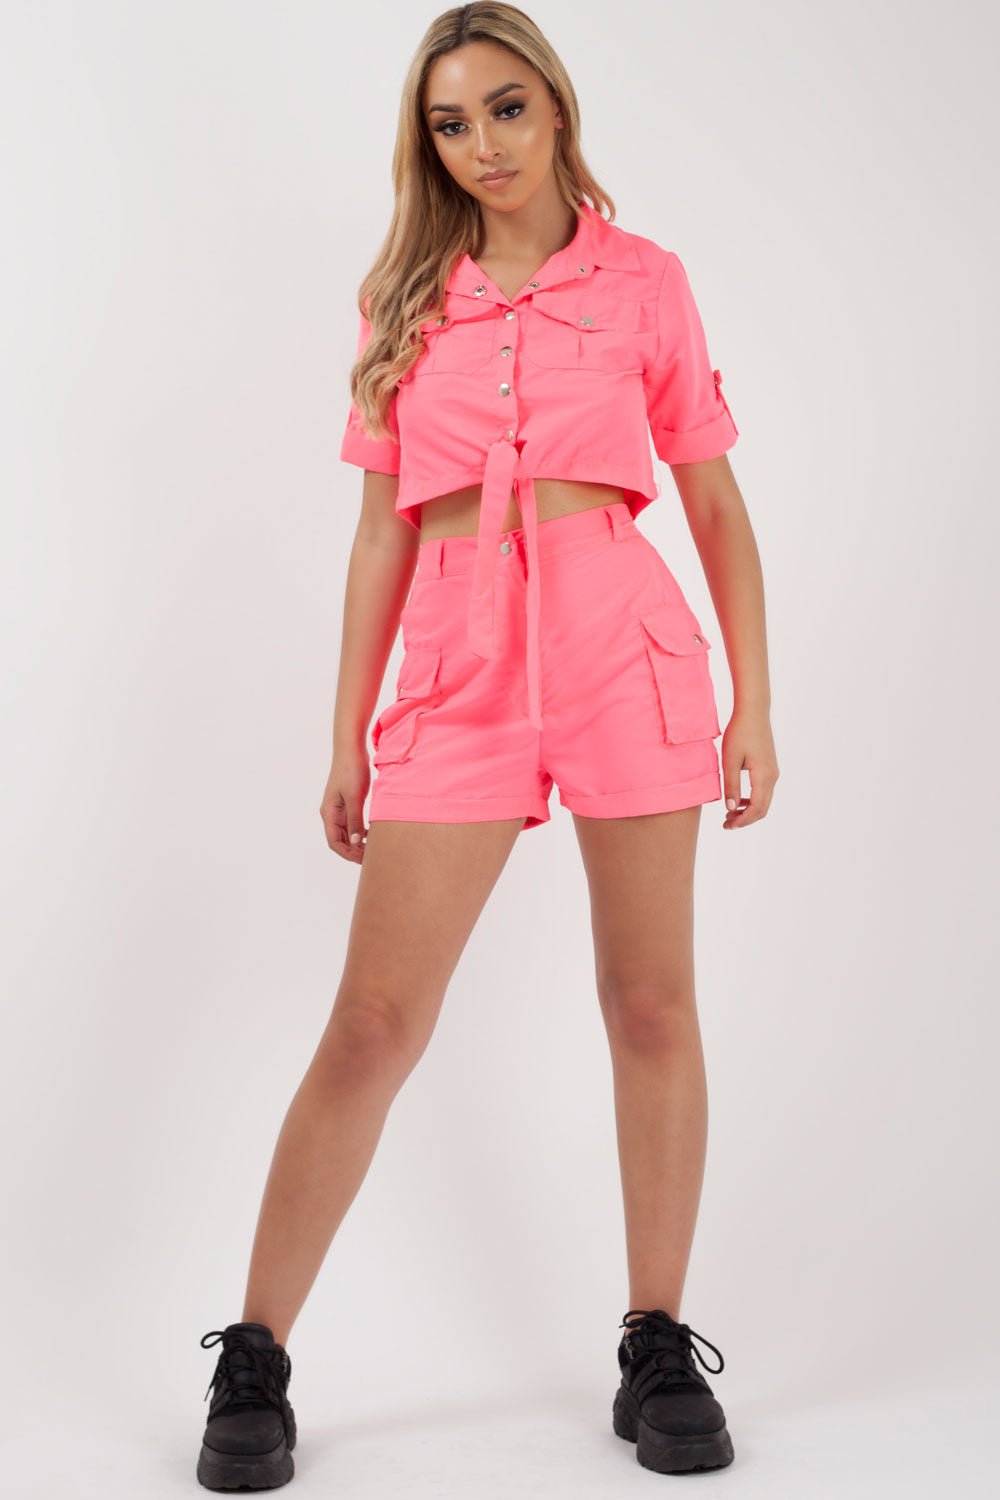 neon pink crop top and utility shorts two piece set styledup fashion